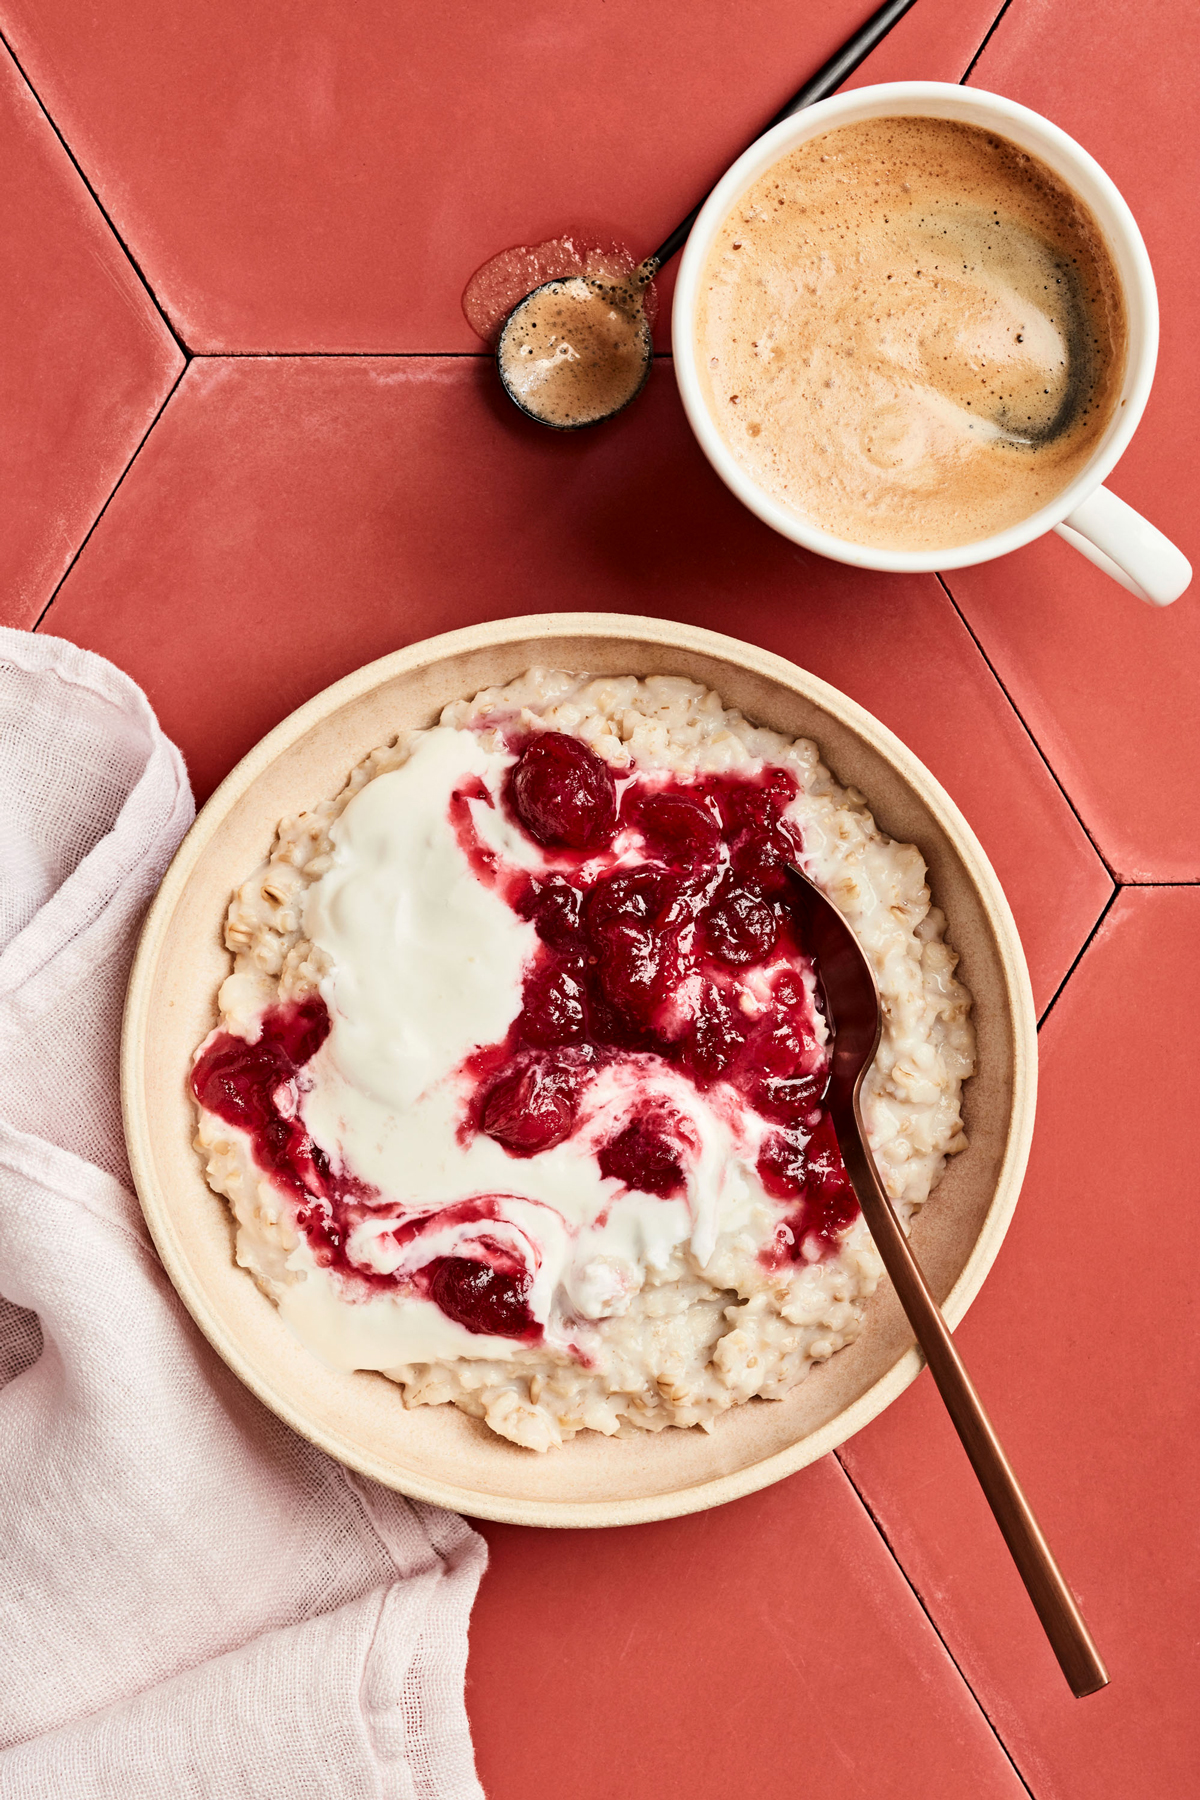 oatmeal and yogurt topped with cranberry sauce